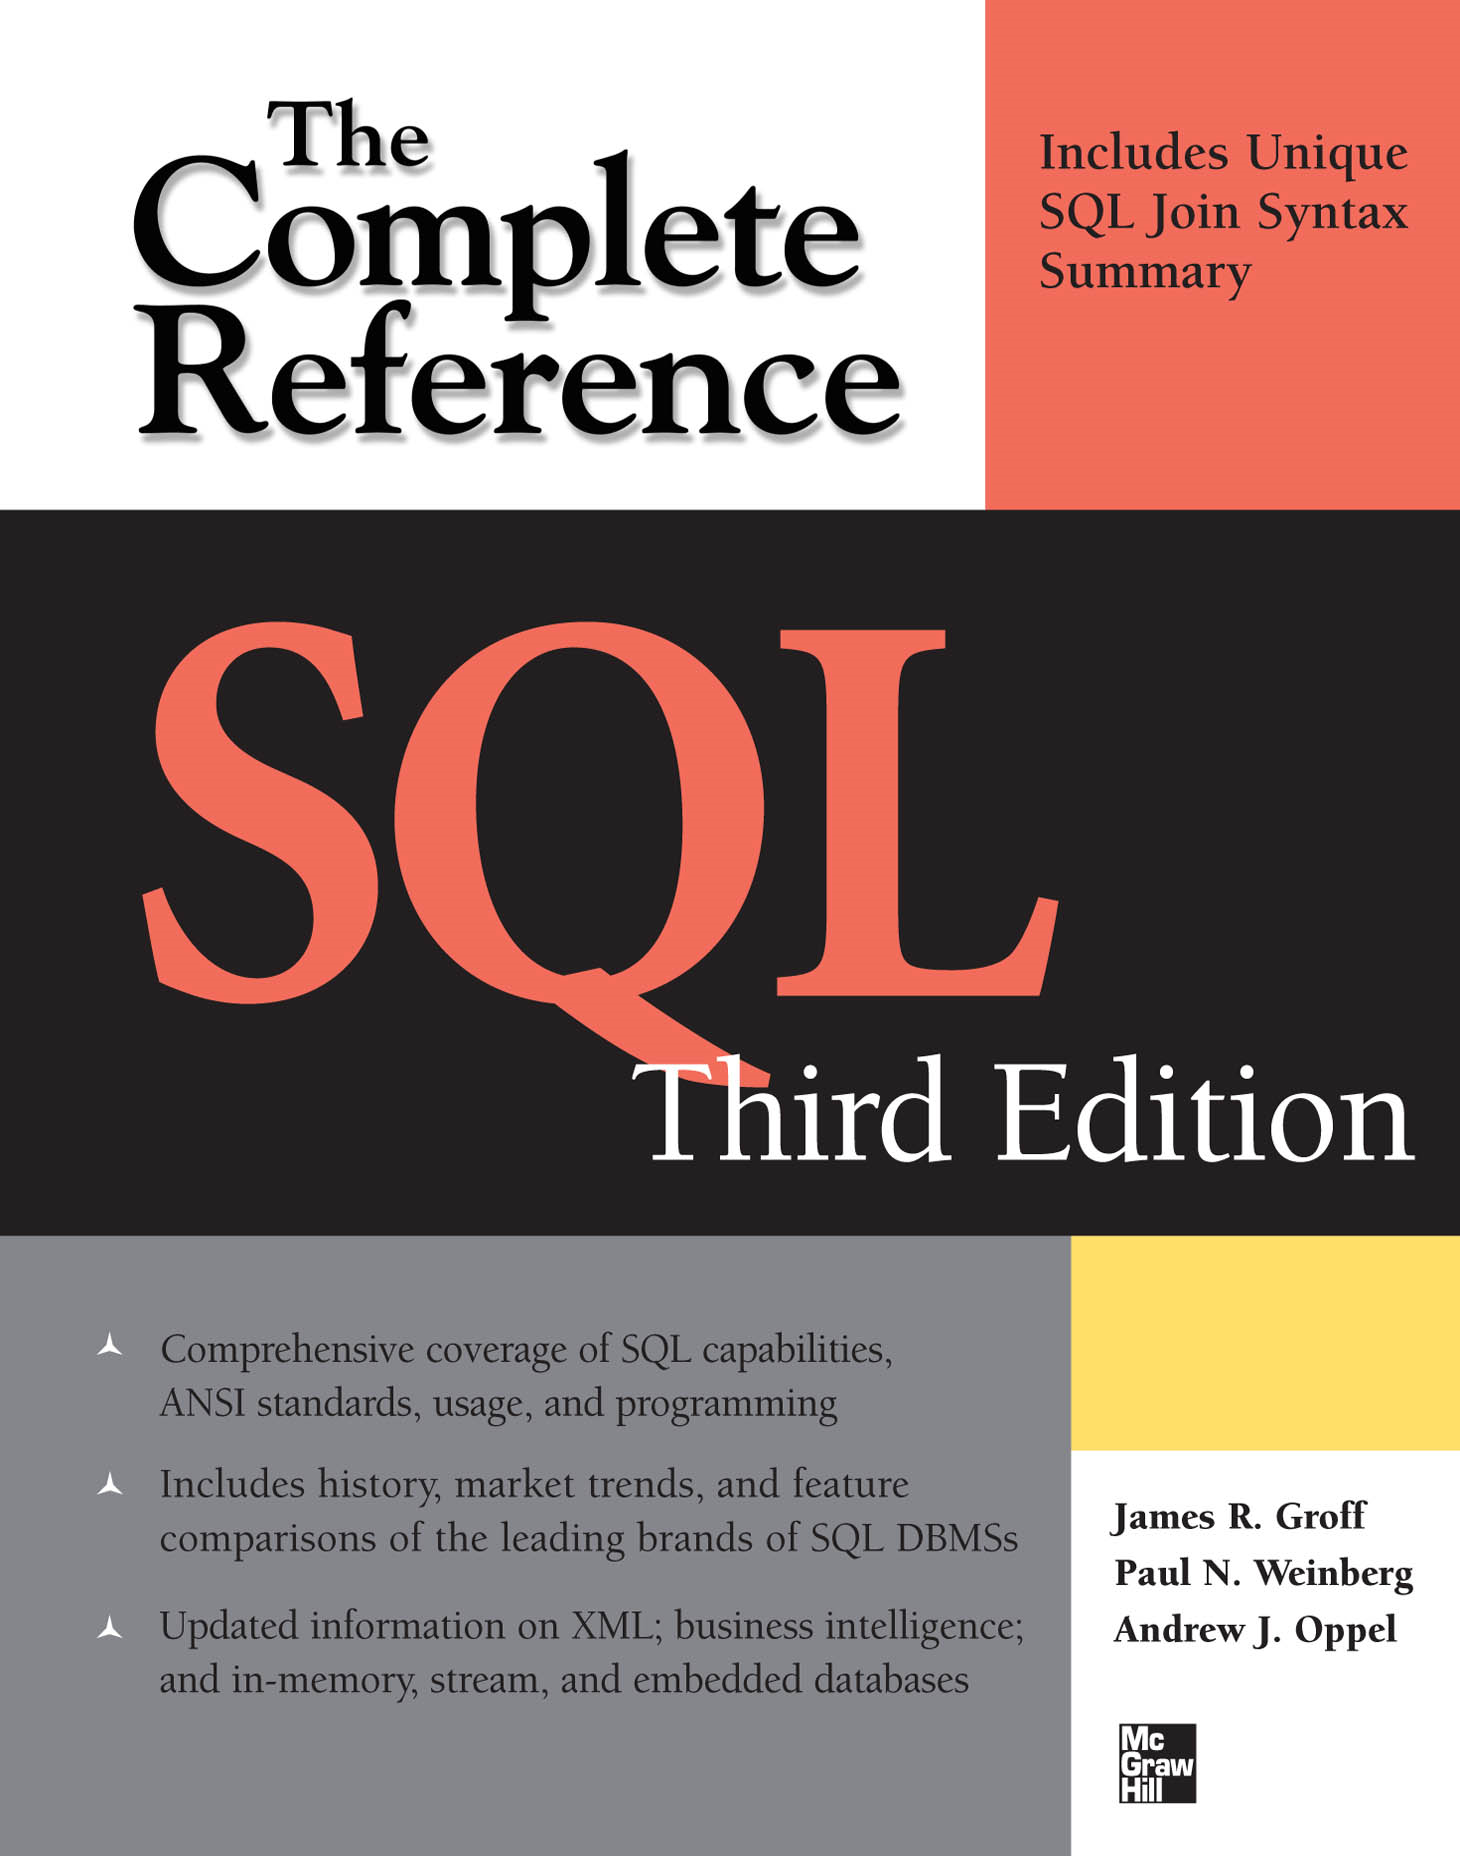 SQL The Complete Reference, 3rd Edition By:  Andy Oppel, Paul Weinberg,James Groff